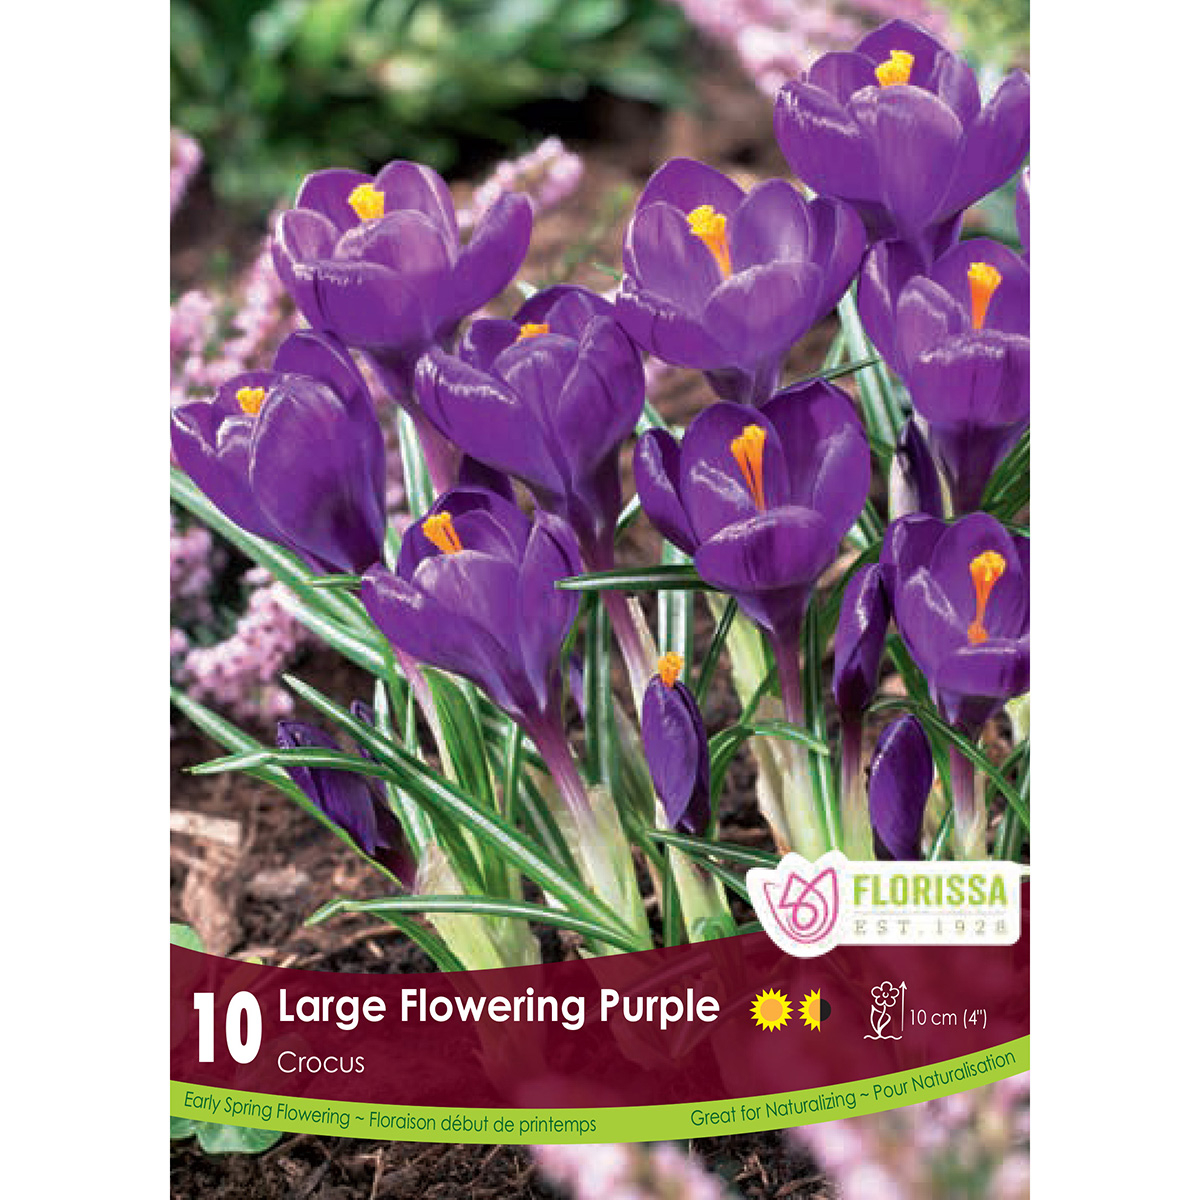 Bulb_Crocus_Lg_Flowering_Purple.jpg